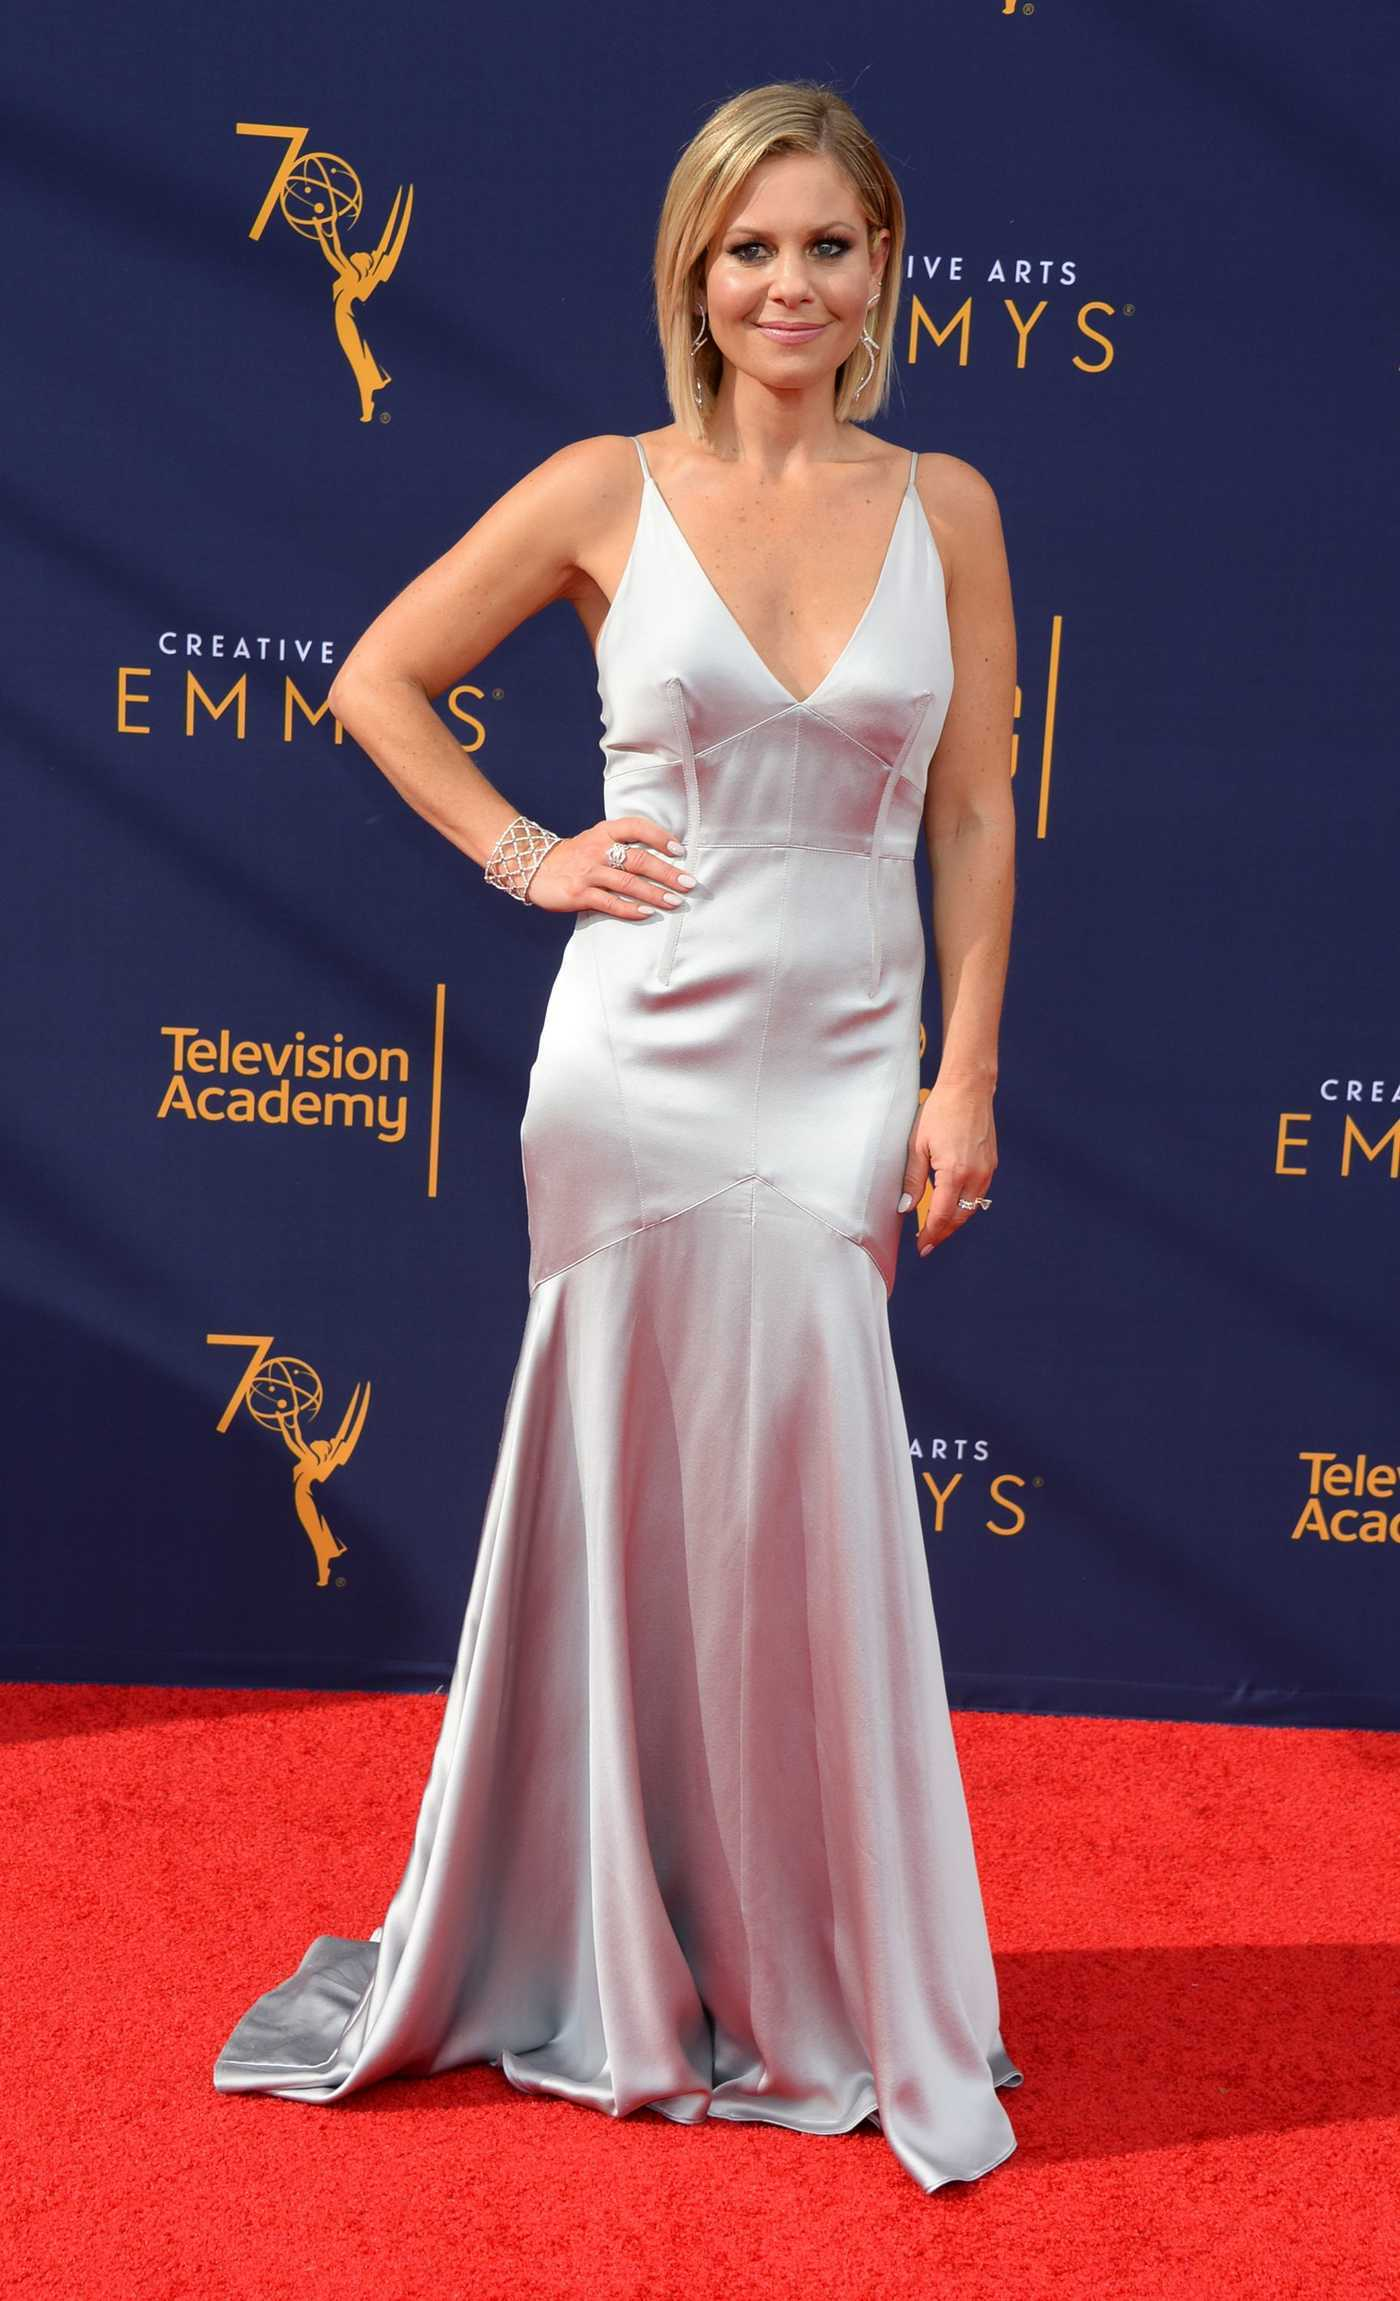 Candace Cameron Bure at the 70th Primetime Creative Arts Emmy Awards in LA 09/09/2018